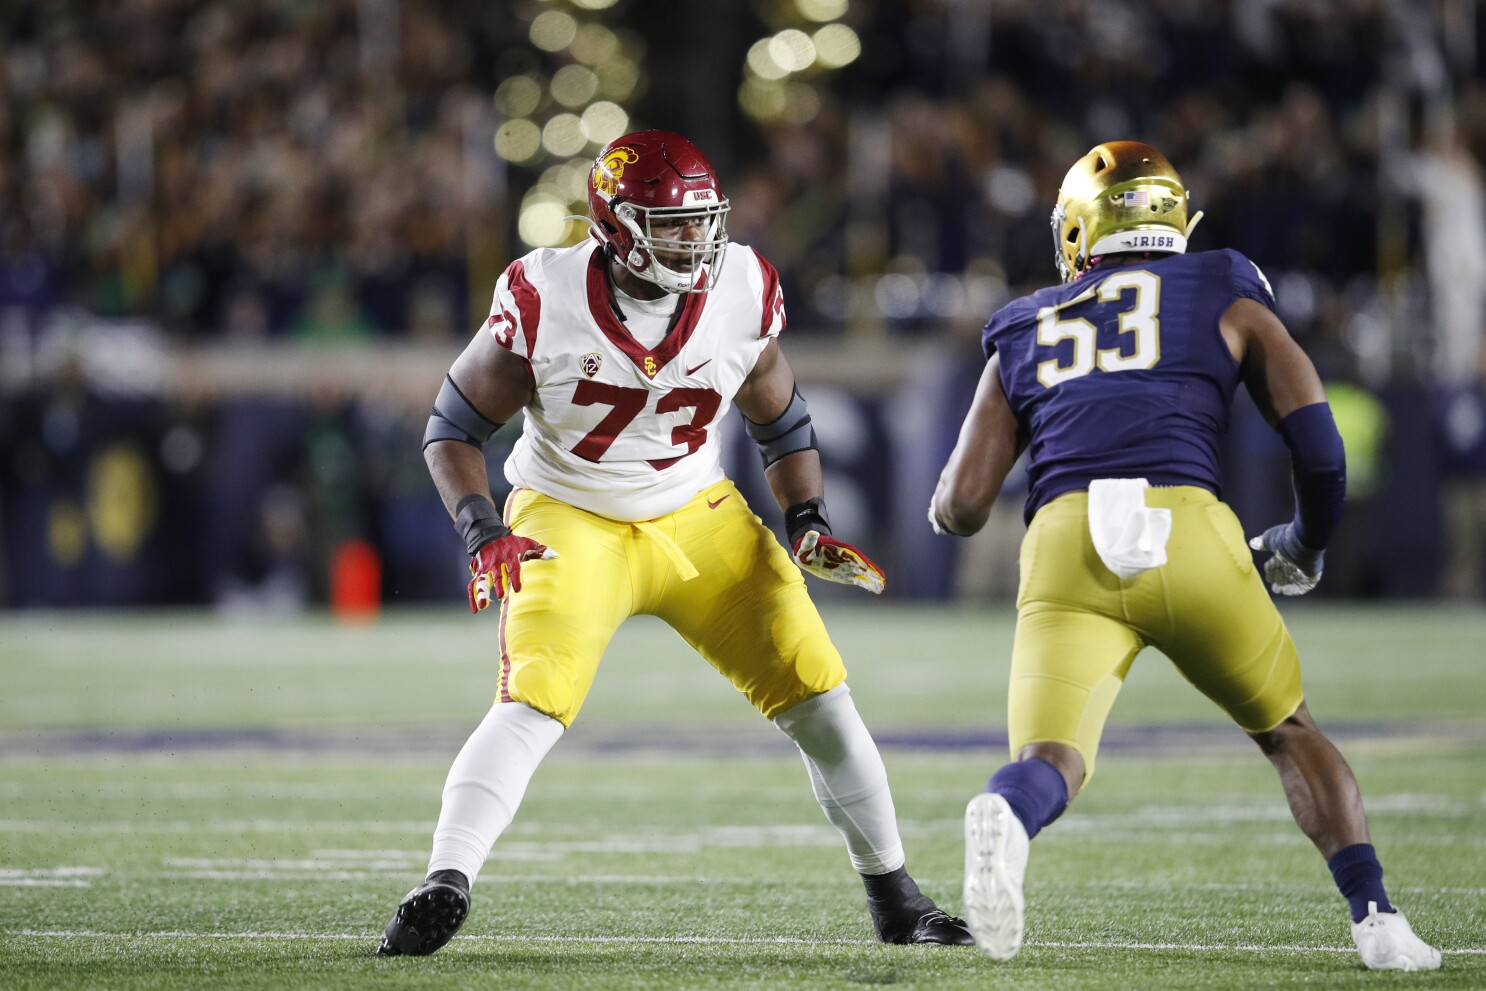 Austin Jackson's departure leaves USC with uncertainty. Again ...